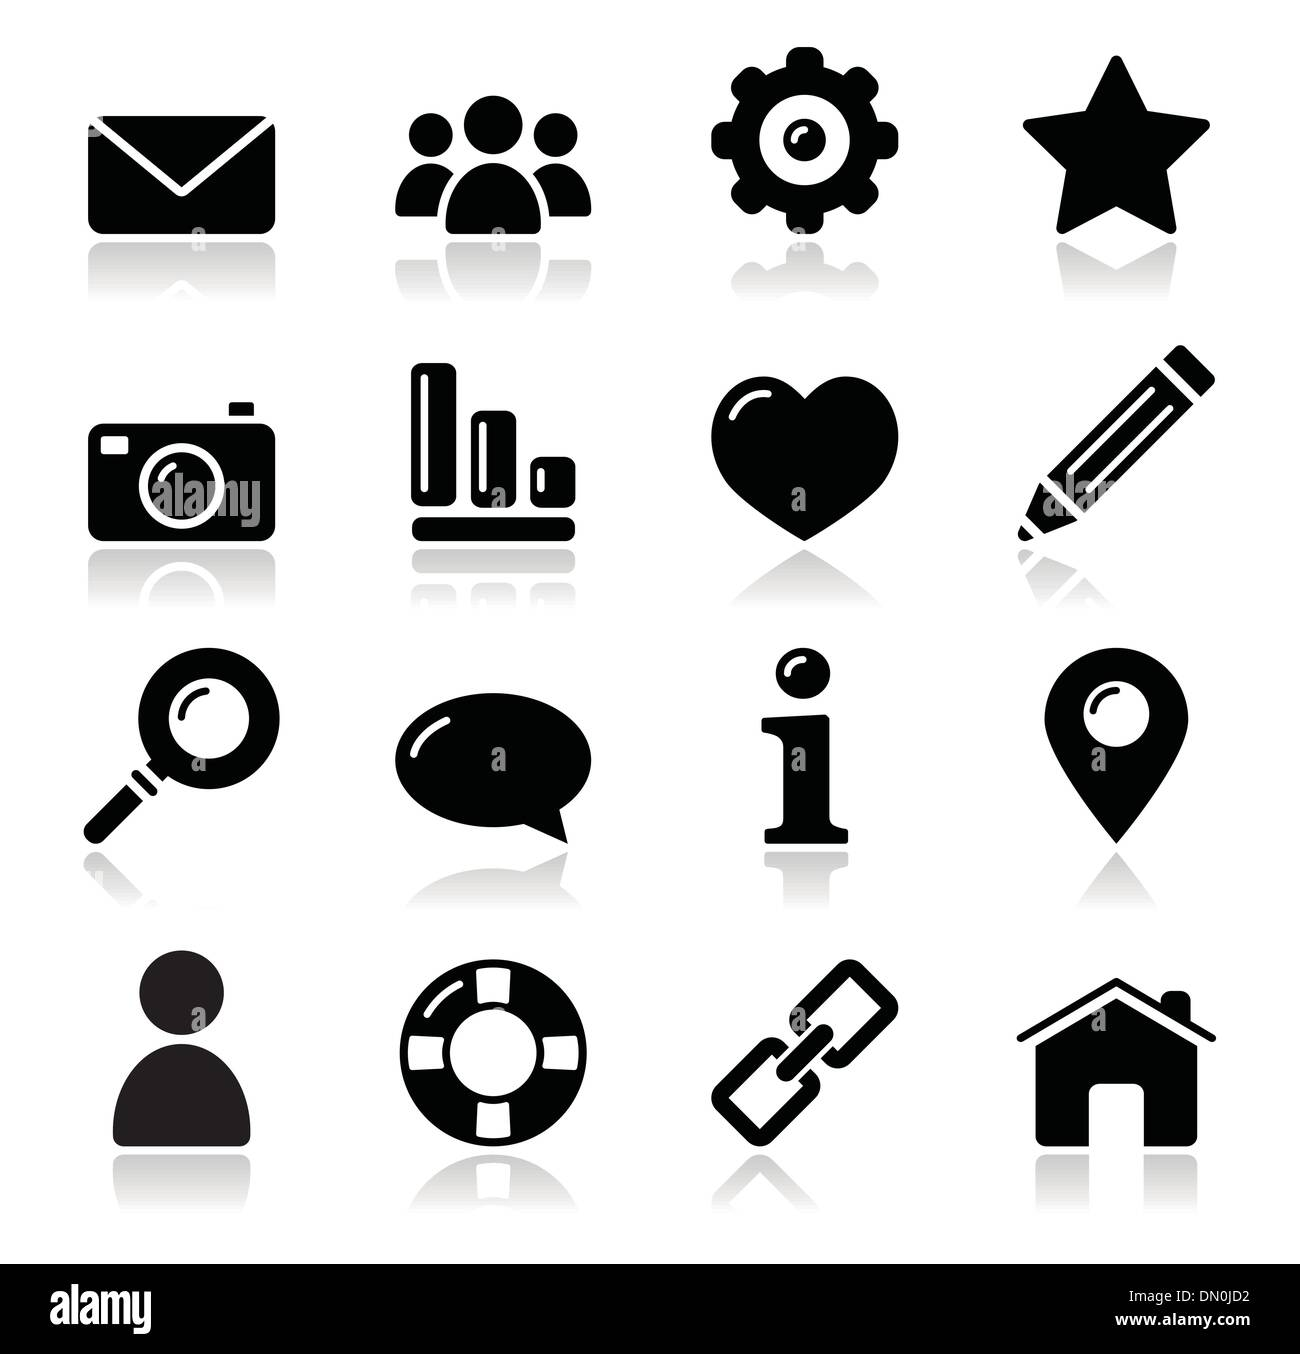 glossy modern clean icons for web navigation stock vector art